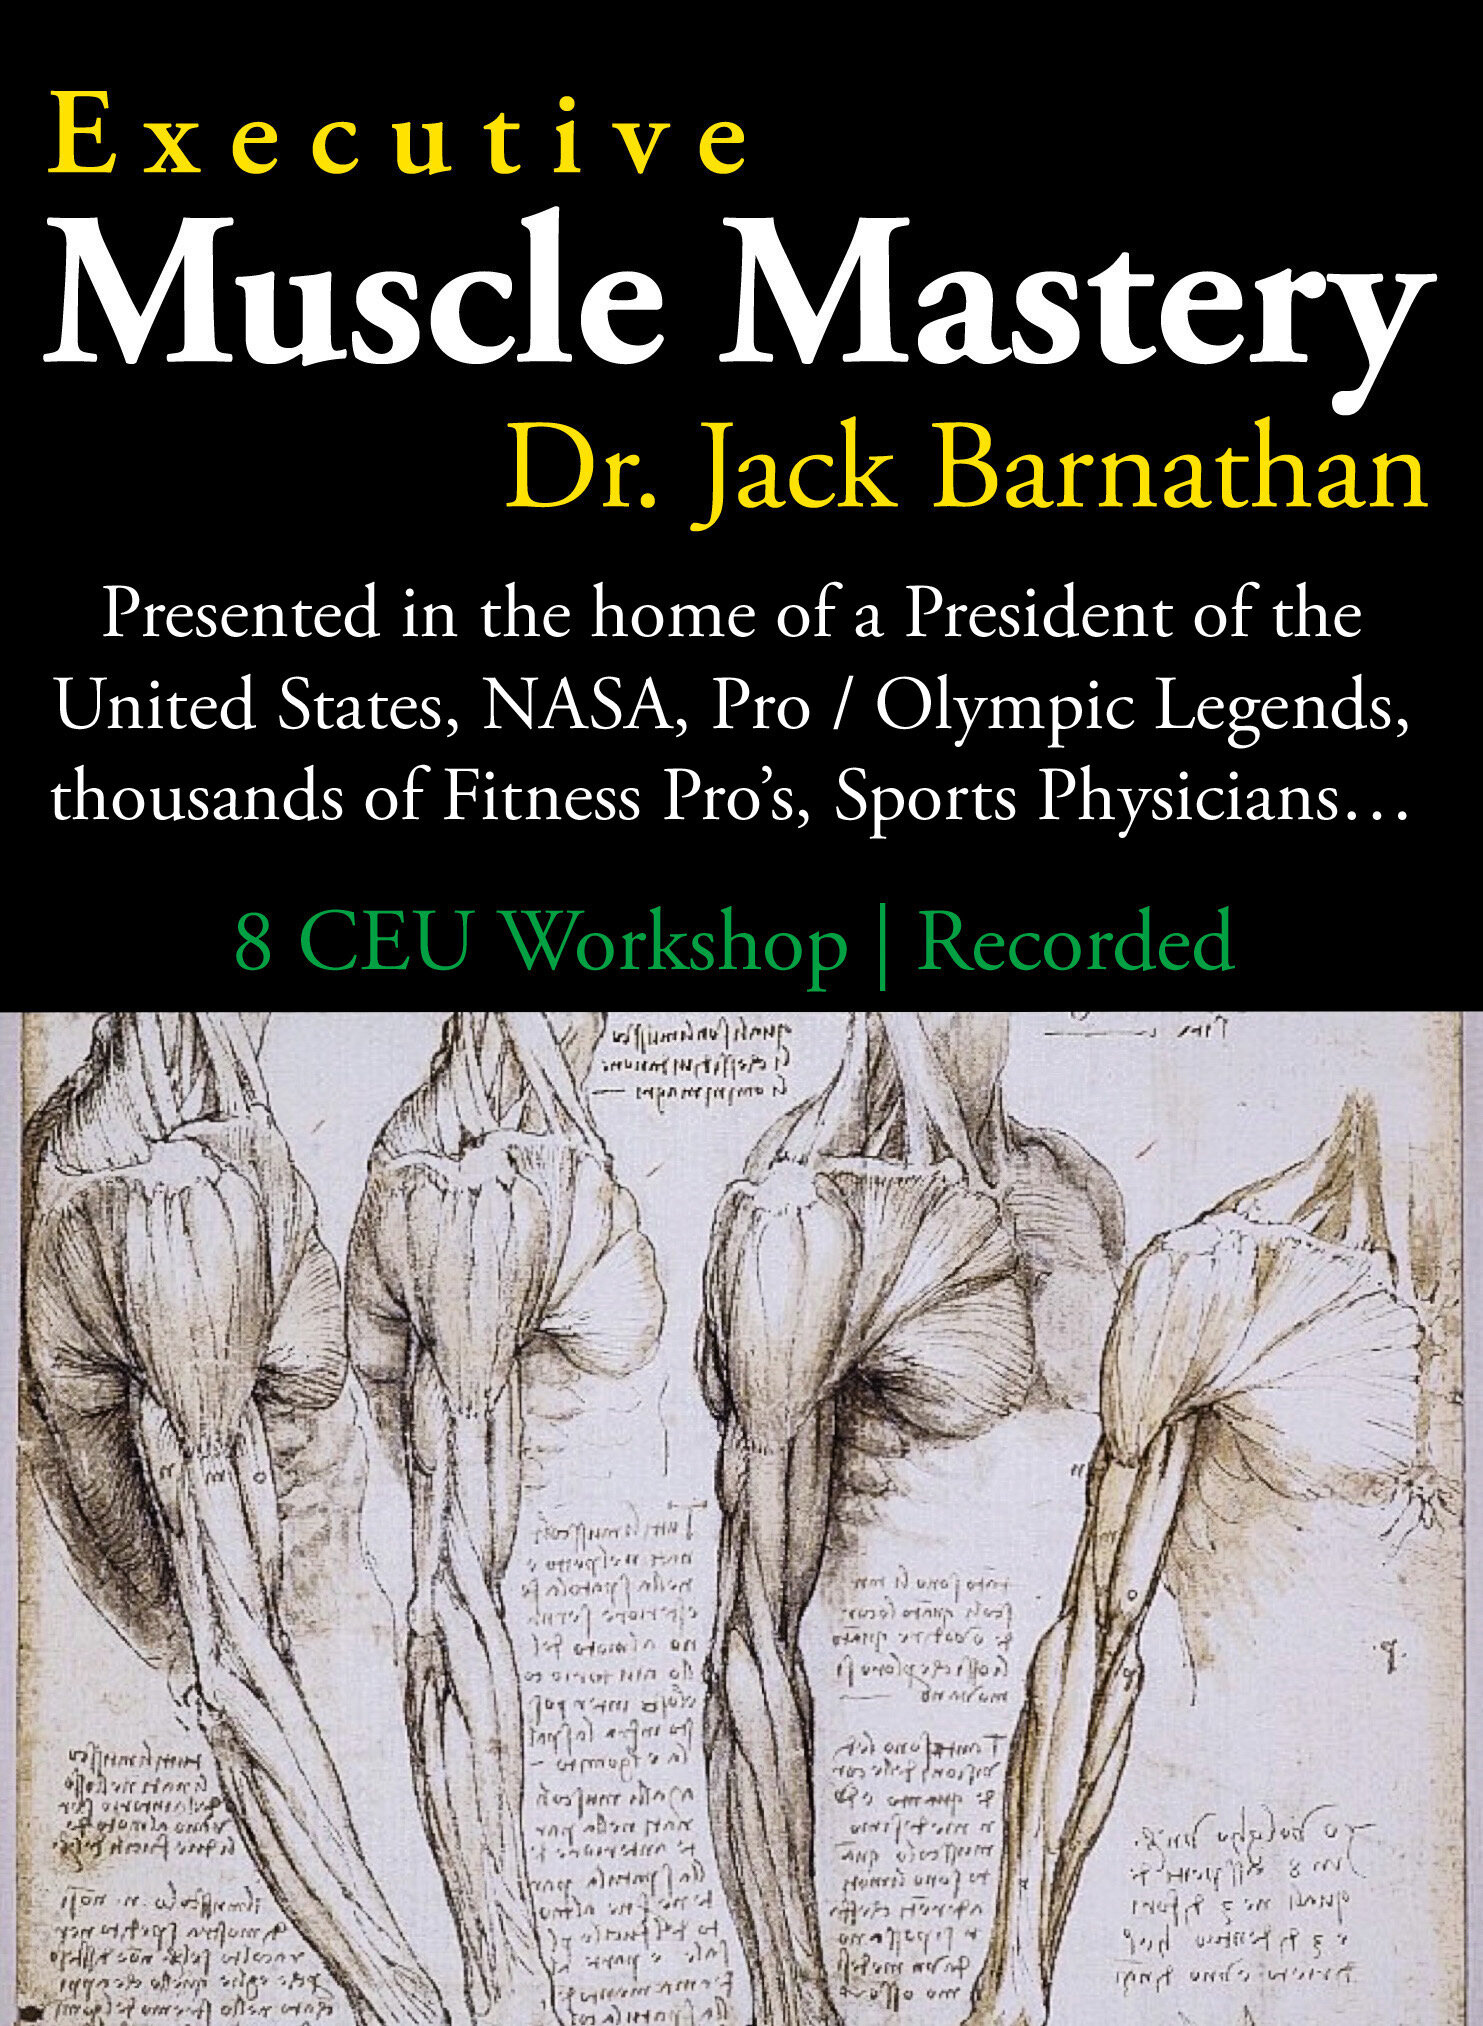 """Executive Muscle Mastery - Strategies designed by Dr. Jack Barnathan for Elite Executive / Gold Medal / Pro Athletes / Fitness Professionals8 CEU Credits (*Fitness Professionals / Wellness / Training Pro's)$99Master the system Dr. Jack Barnathan has developed through decades of serving many of the best athletes / performing artists on earth. The same program he presented at the home of a President of the United States for the Chief Executive, his family and staff - and the following day for the family of another U.S. President.Clear steps and precise form to """"coax"""" personal transformation, energy, enduring power and performance for your """"physical design.™"""" Leave behind the fads that """"brutalize"""" the body into a never-ending cortisol / stress hormone disaster, or waste your time with an hour of distraction / entertainment masquerading as a workout.Designed for """"peak performing individual"""" including Top Executives and elite Athletes, along with the Fitness Design Pro's who guide them.Includes physical design / meal craft / prep and recover 'rituals,' along with a one year subscription to Dr. Barnathan's Private online """"Muscle of the Month"""" updates for Executive Muscle Mastery students only.♦️8 CEU's - $99♦️"""